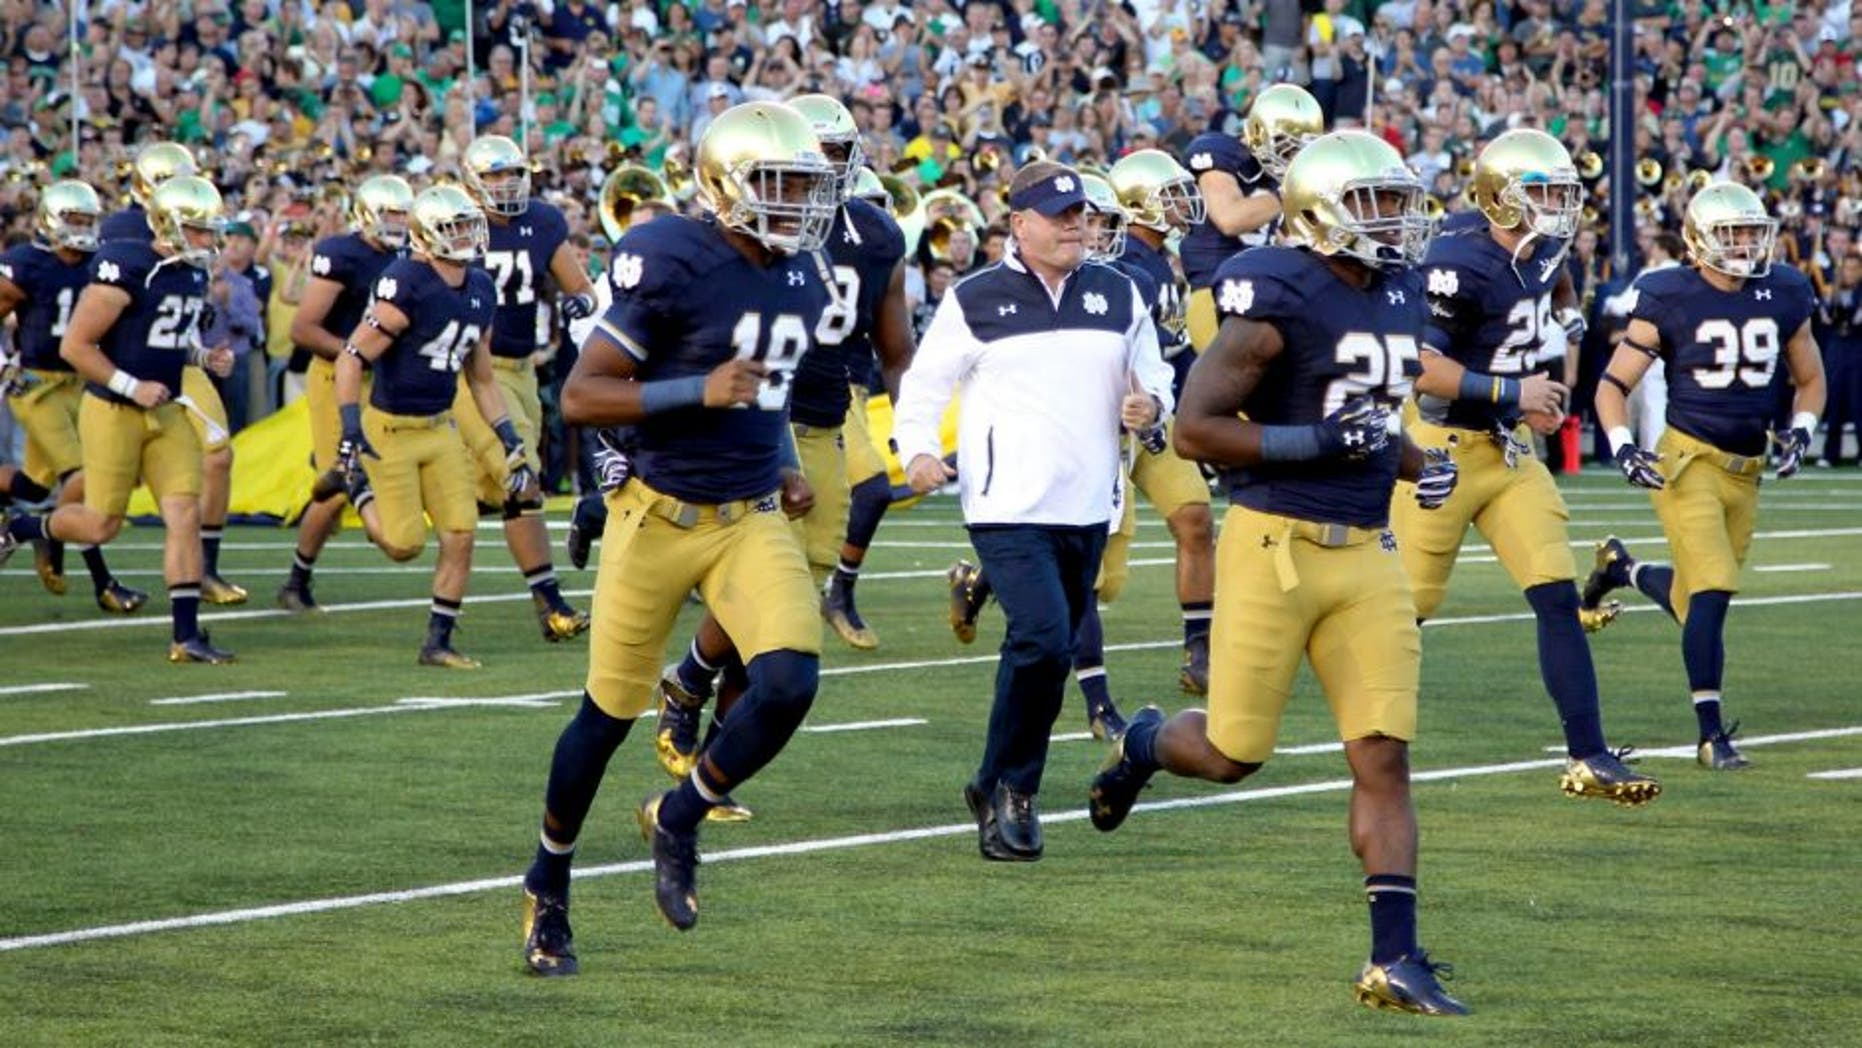 Sep 6, 2014; South Bend, IN, USA; Notre Dame Fighting Irish coach Brian Kelly runs onto the field with the team before the game against the Michigan Wolverines at Notre Dame Stadium. Mandatory Credit: Brian Spurlock-USA TODAY Sports